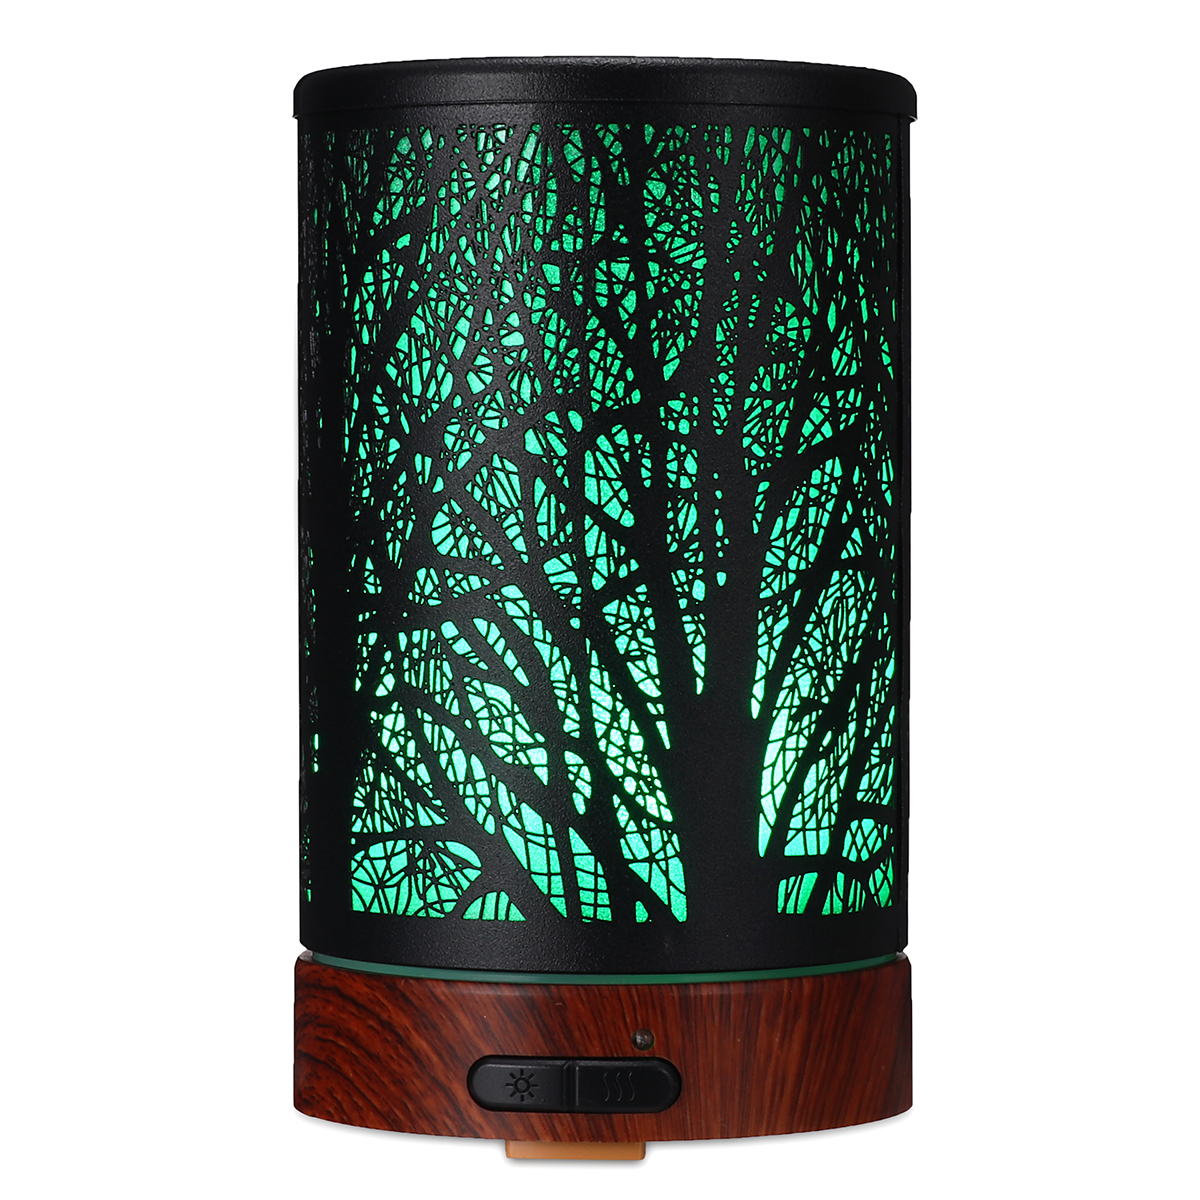 Intelligent LED Humidifier Aroma Essential Oil Humidifier Air Aromatherapy Diffuser Purifier